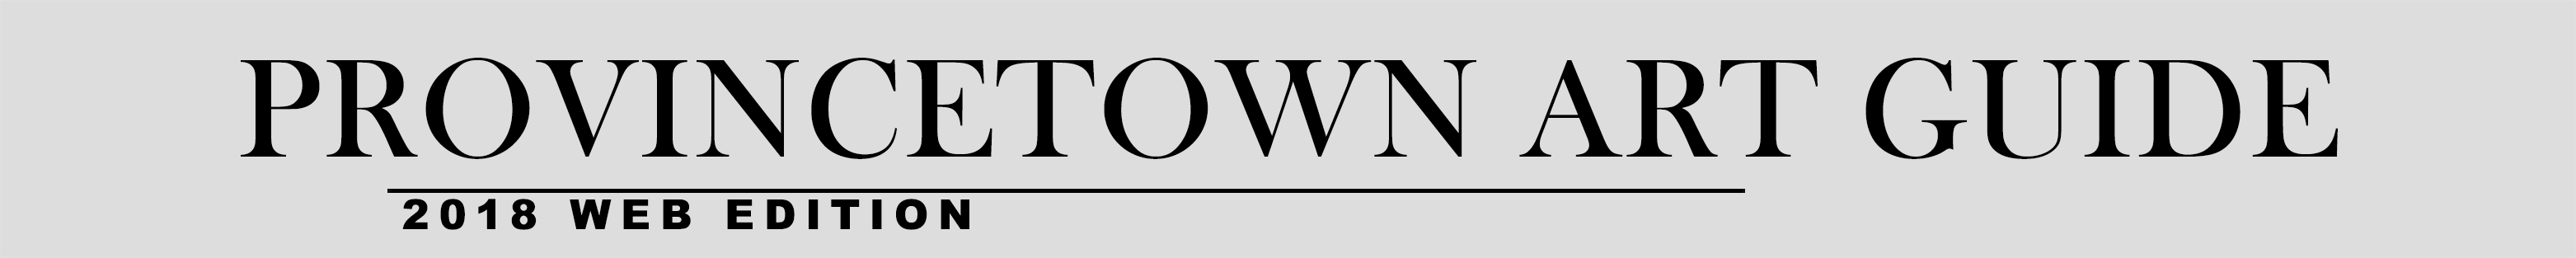 Provincetown Art Guide 2018 web edition header image with link to home page